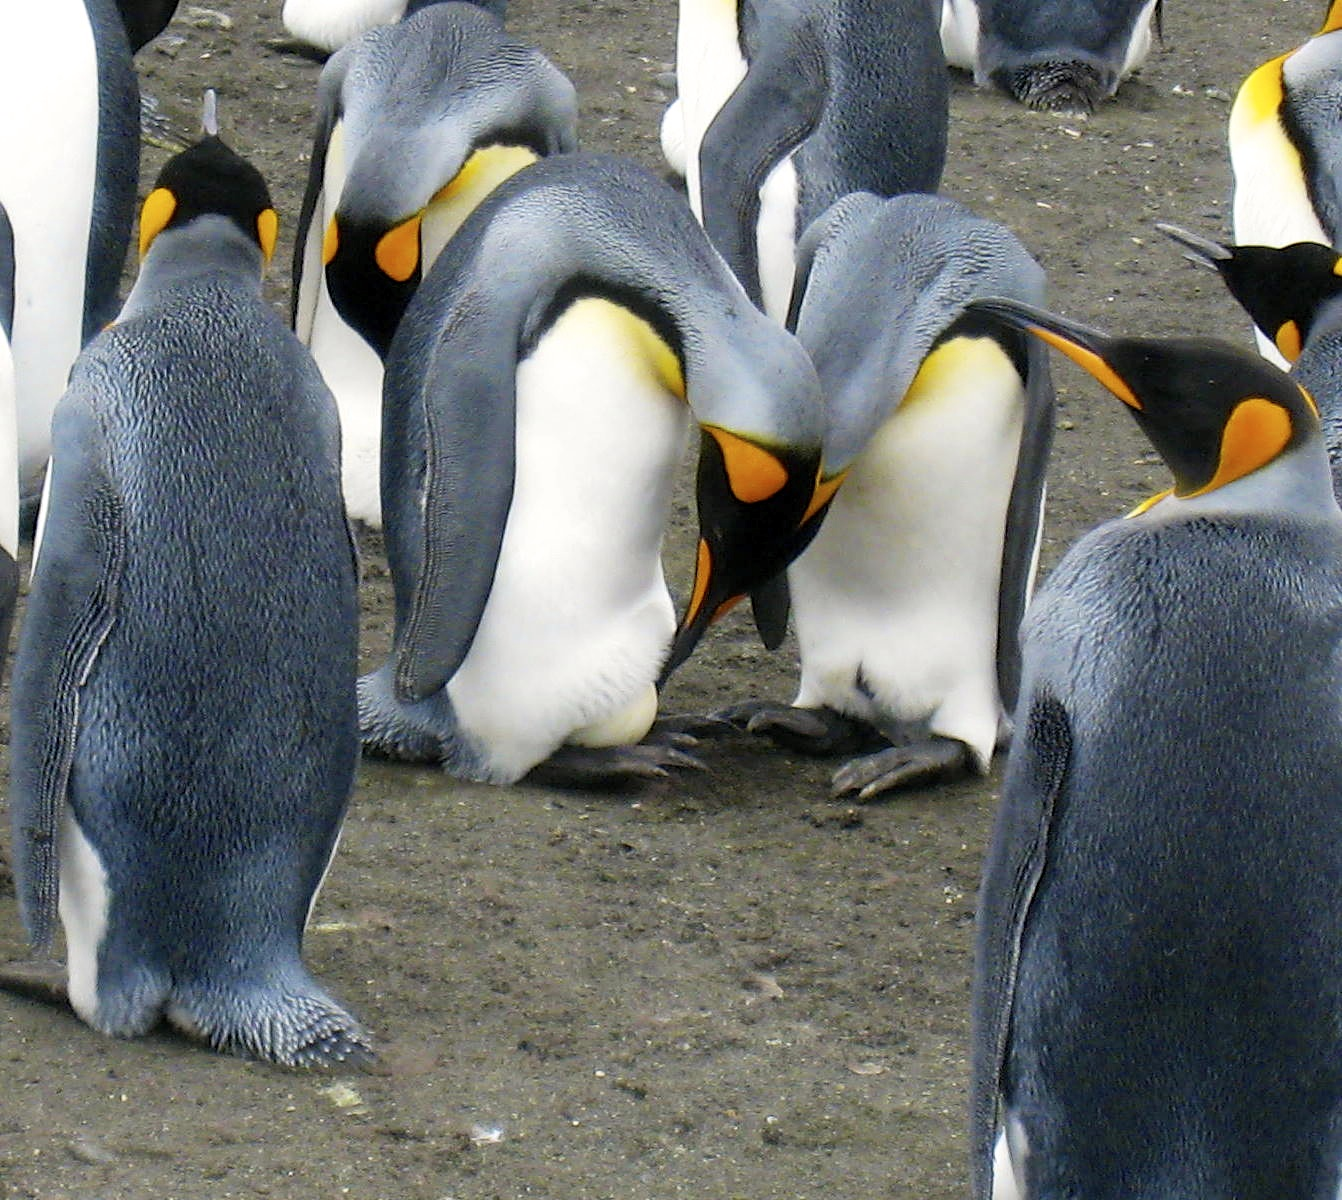 King penguin pair in process of passing the egg from one to the other.